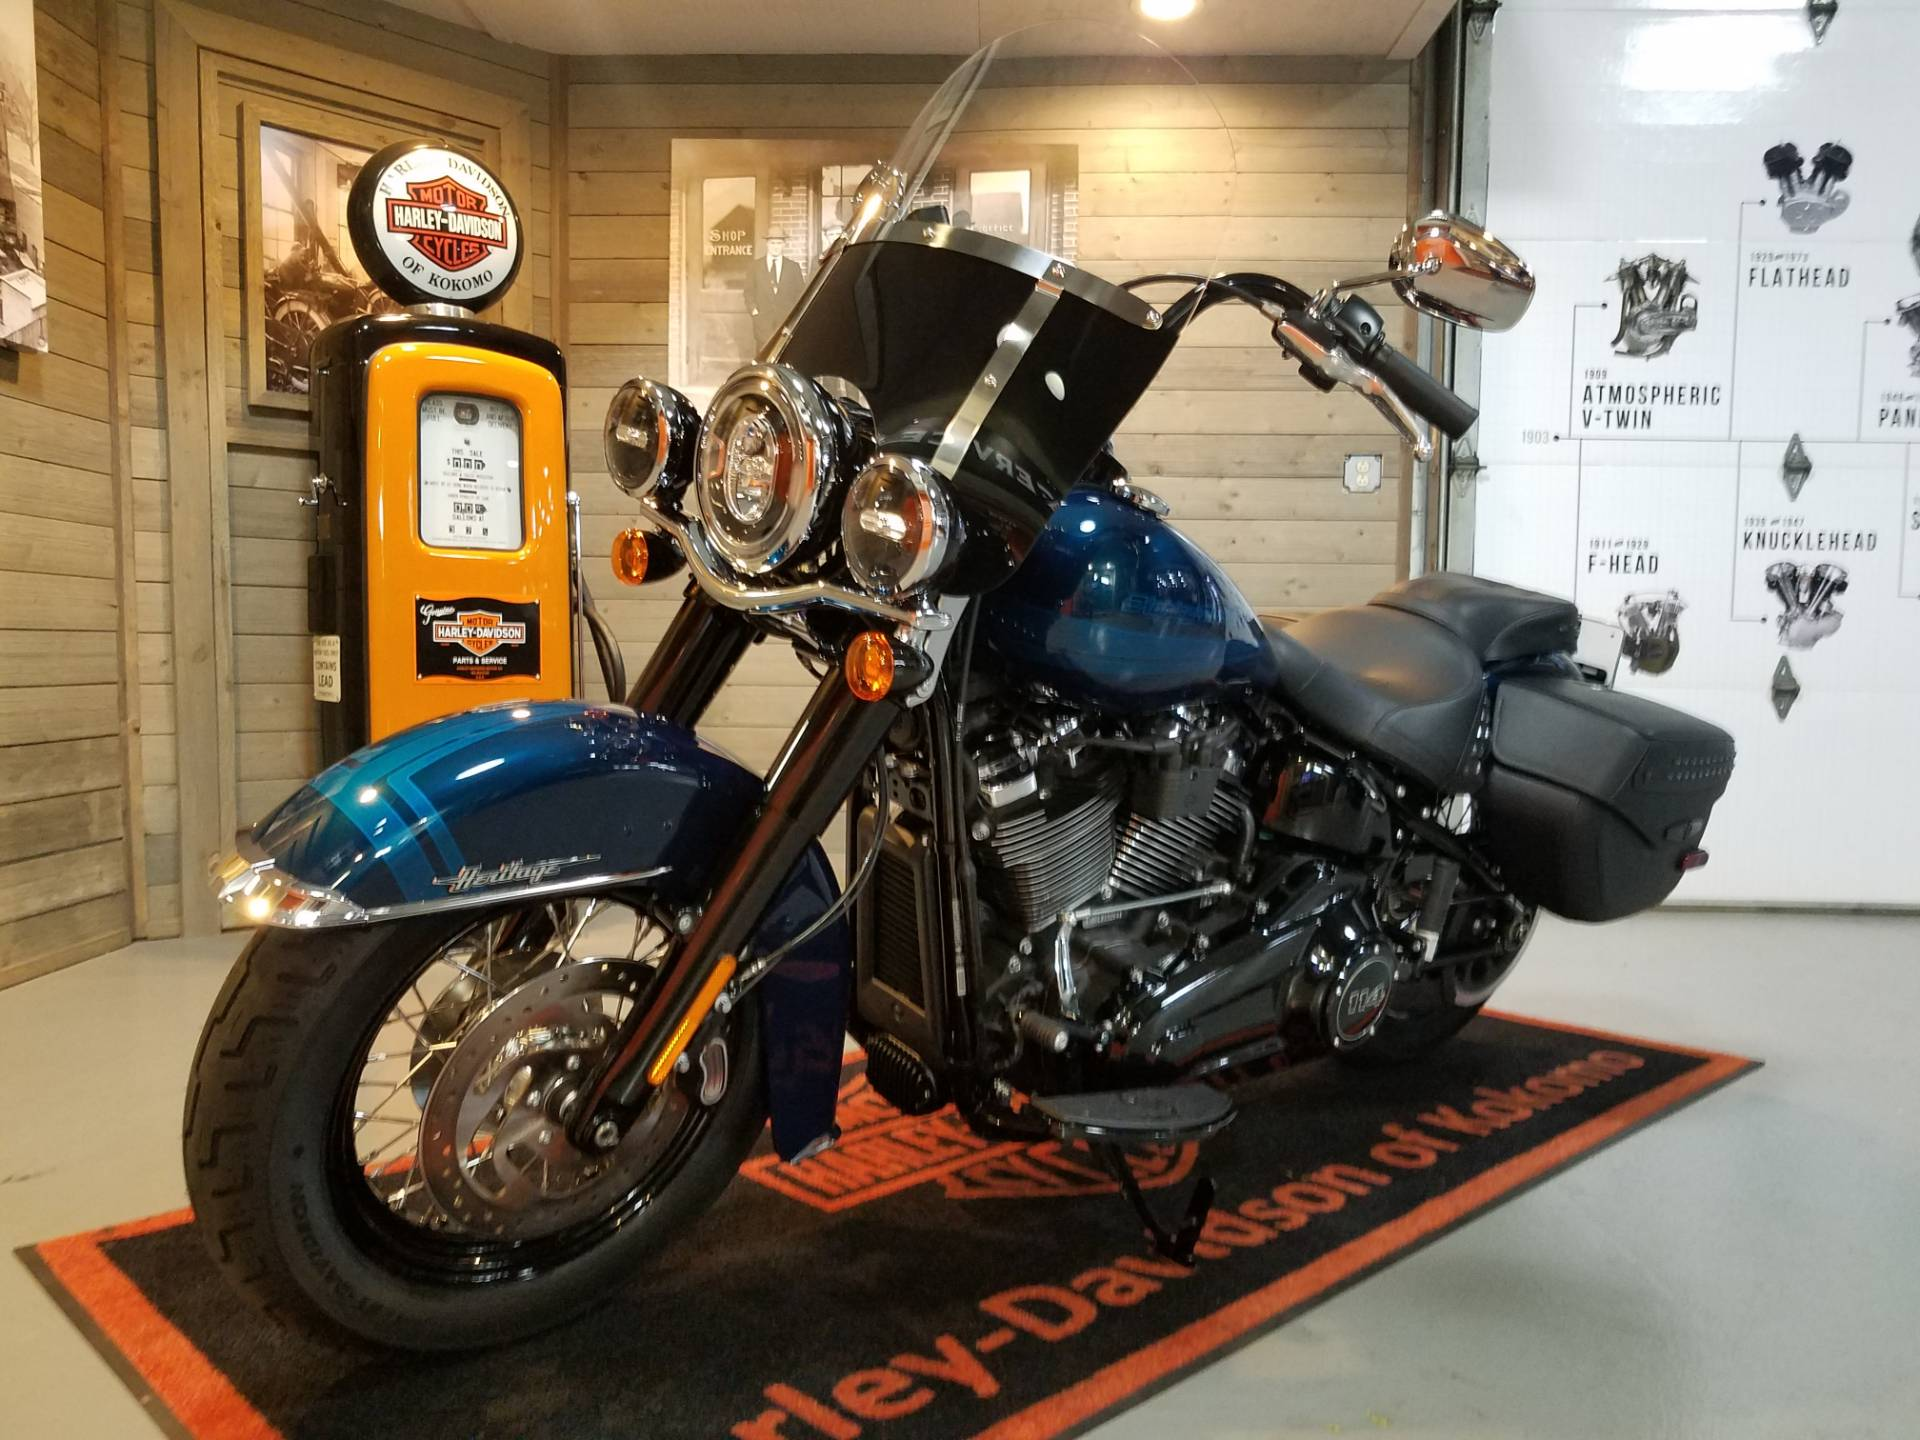 2020 Harley-Davidson Heritage Classic 114 in Kokomo, Indiana - Photo 8